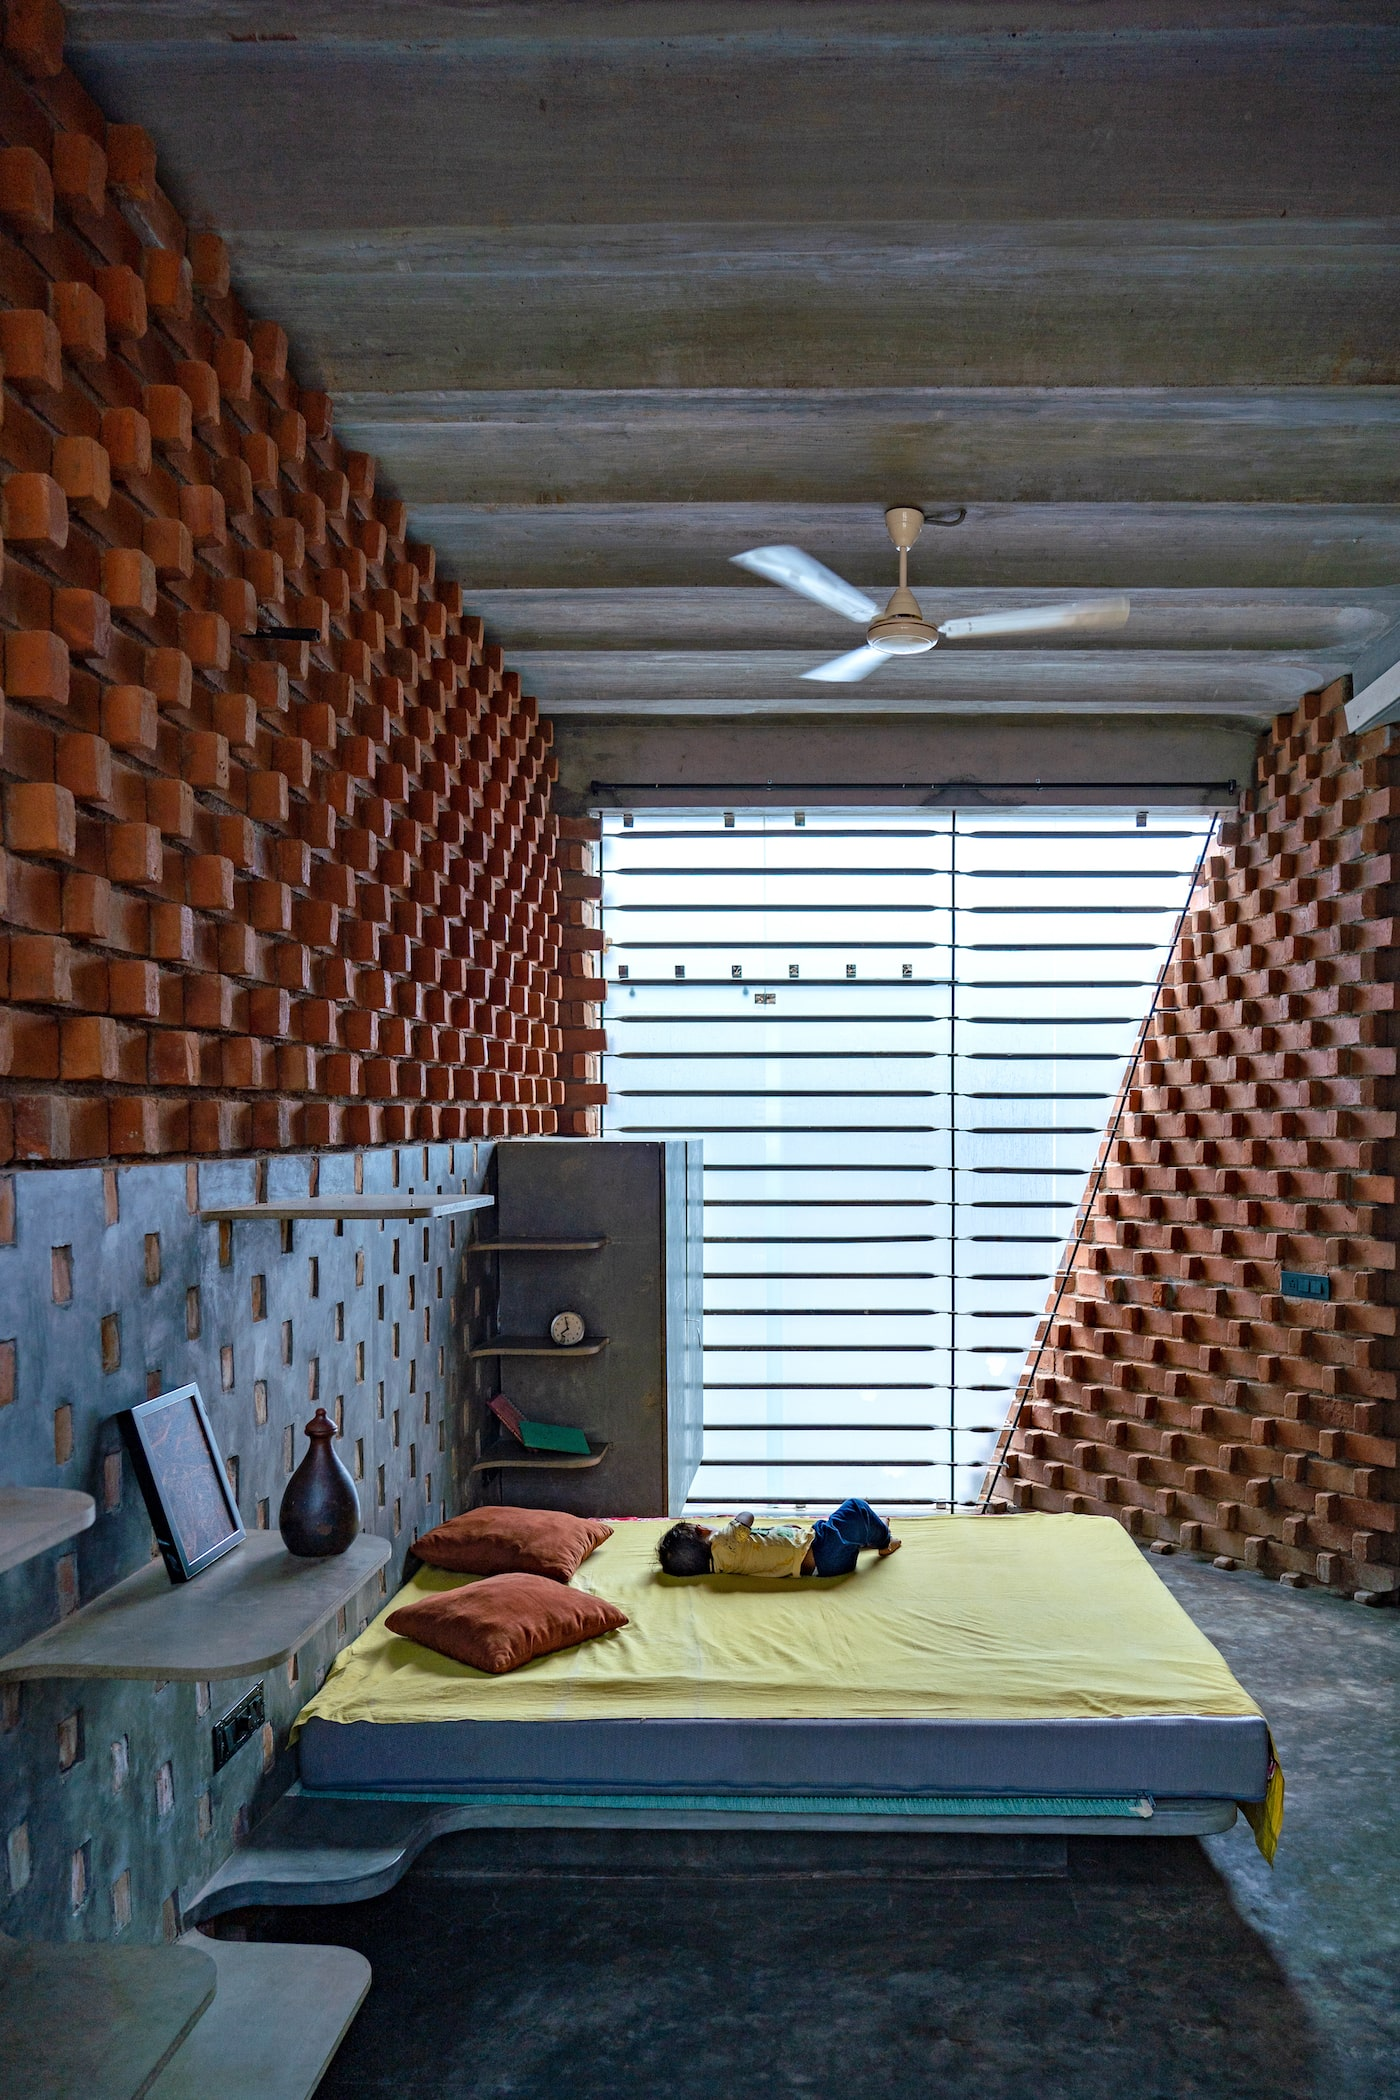 Bedroom with concrete floors and red brick walls